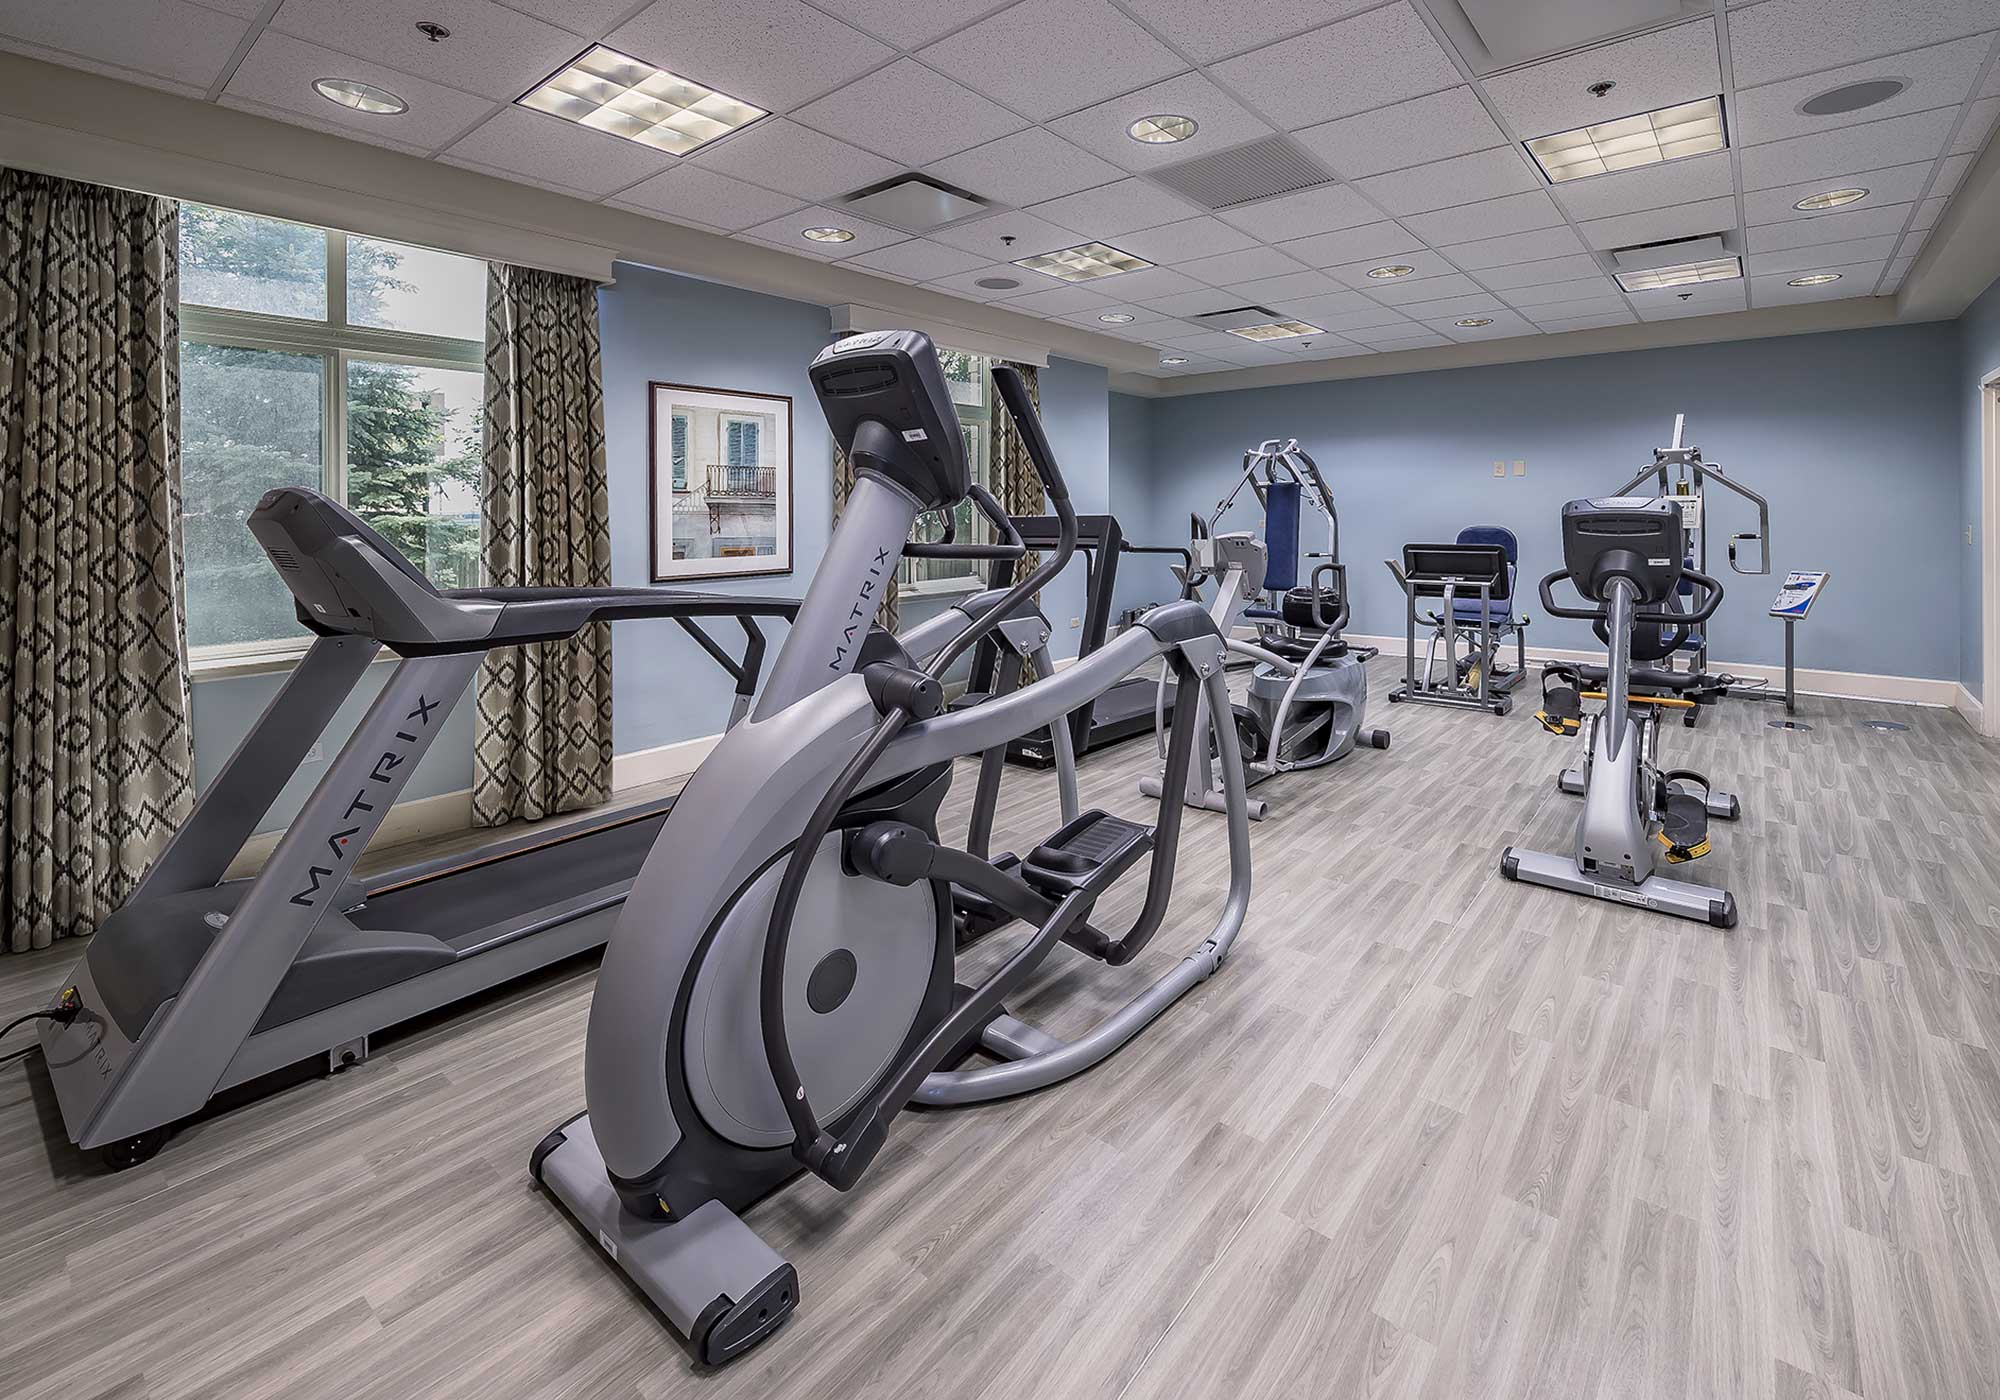 Work out room with equipment